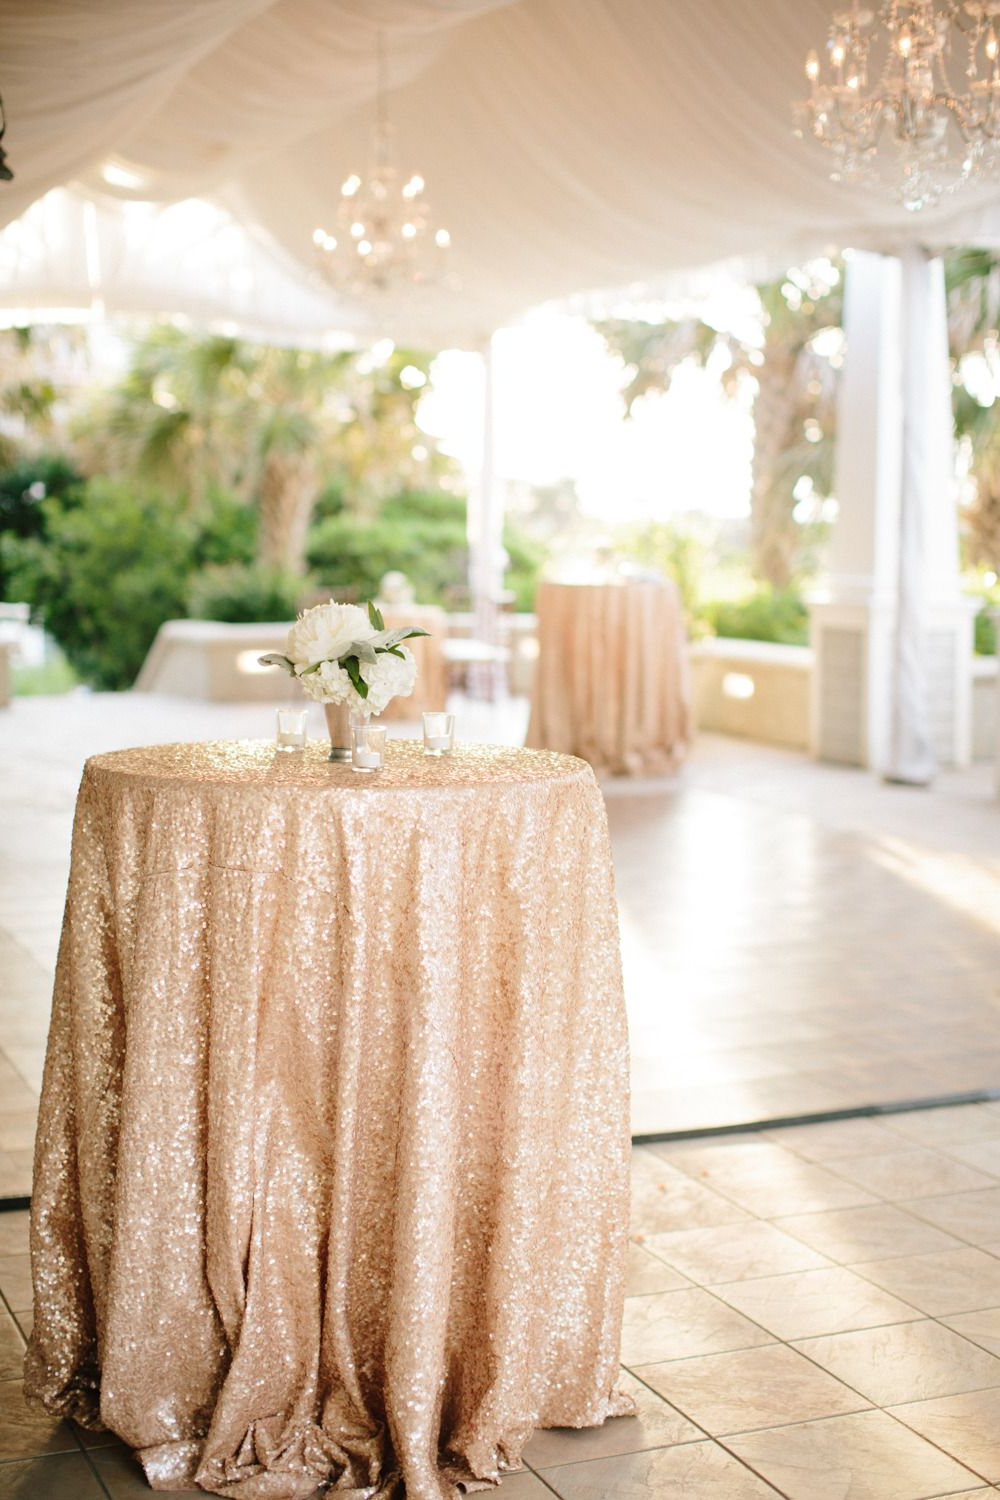 Abby Cocktail Tables Within Recent Chic Seaside Bald Head Island Wedding (Gallery 13 of 20)